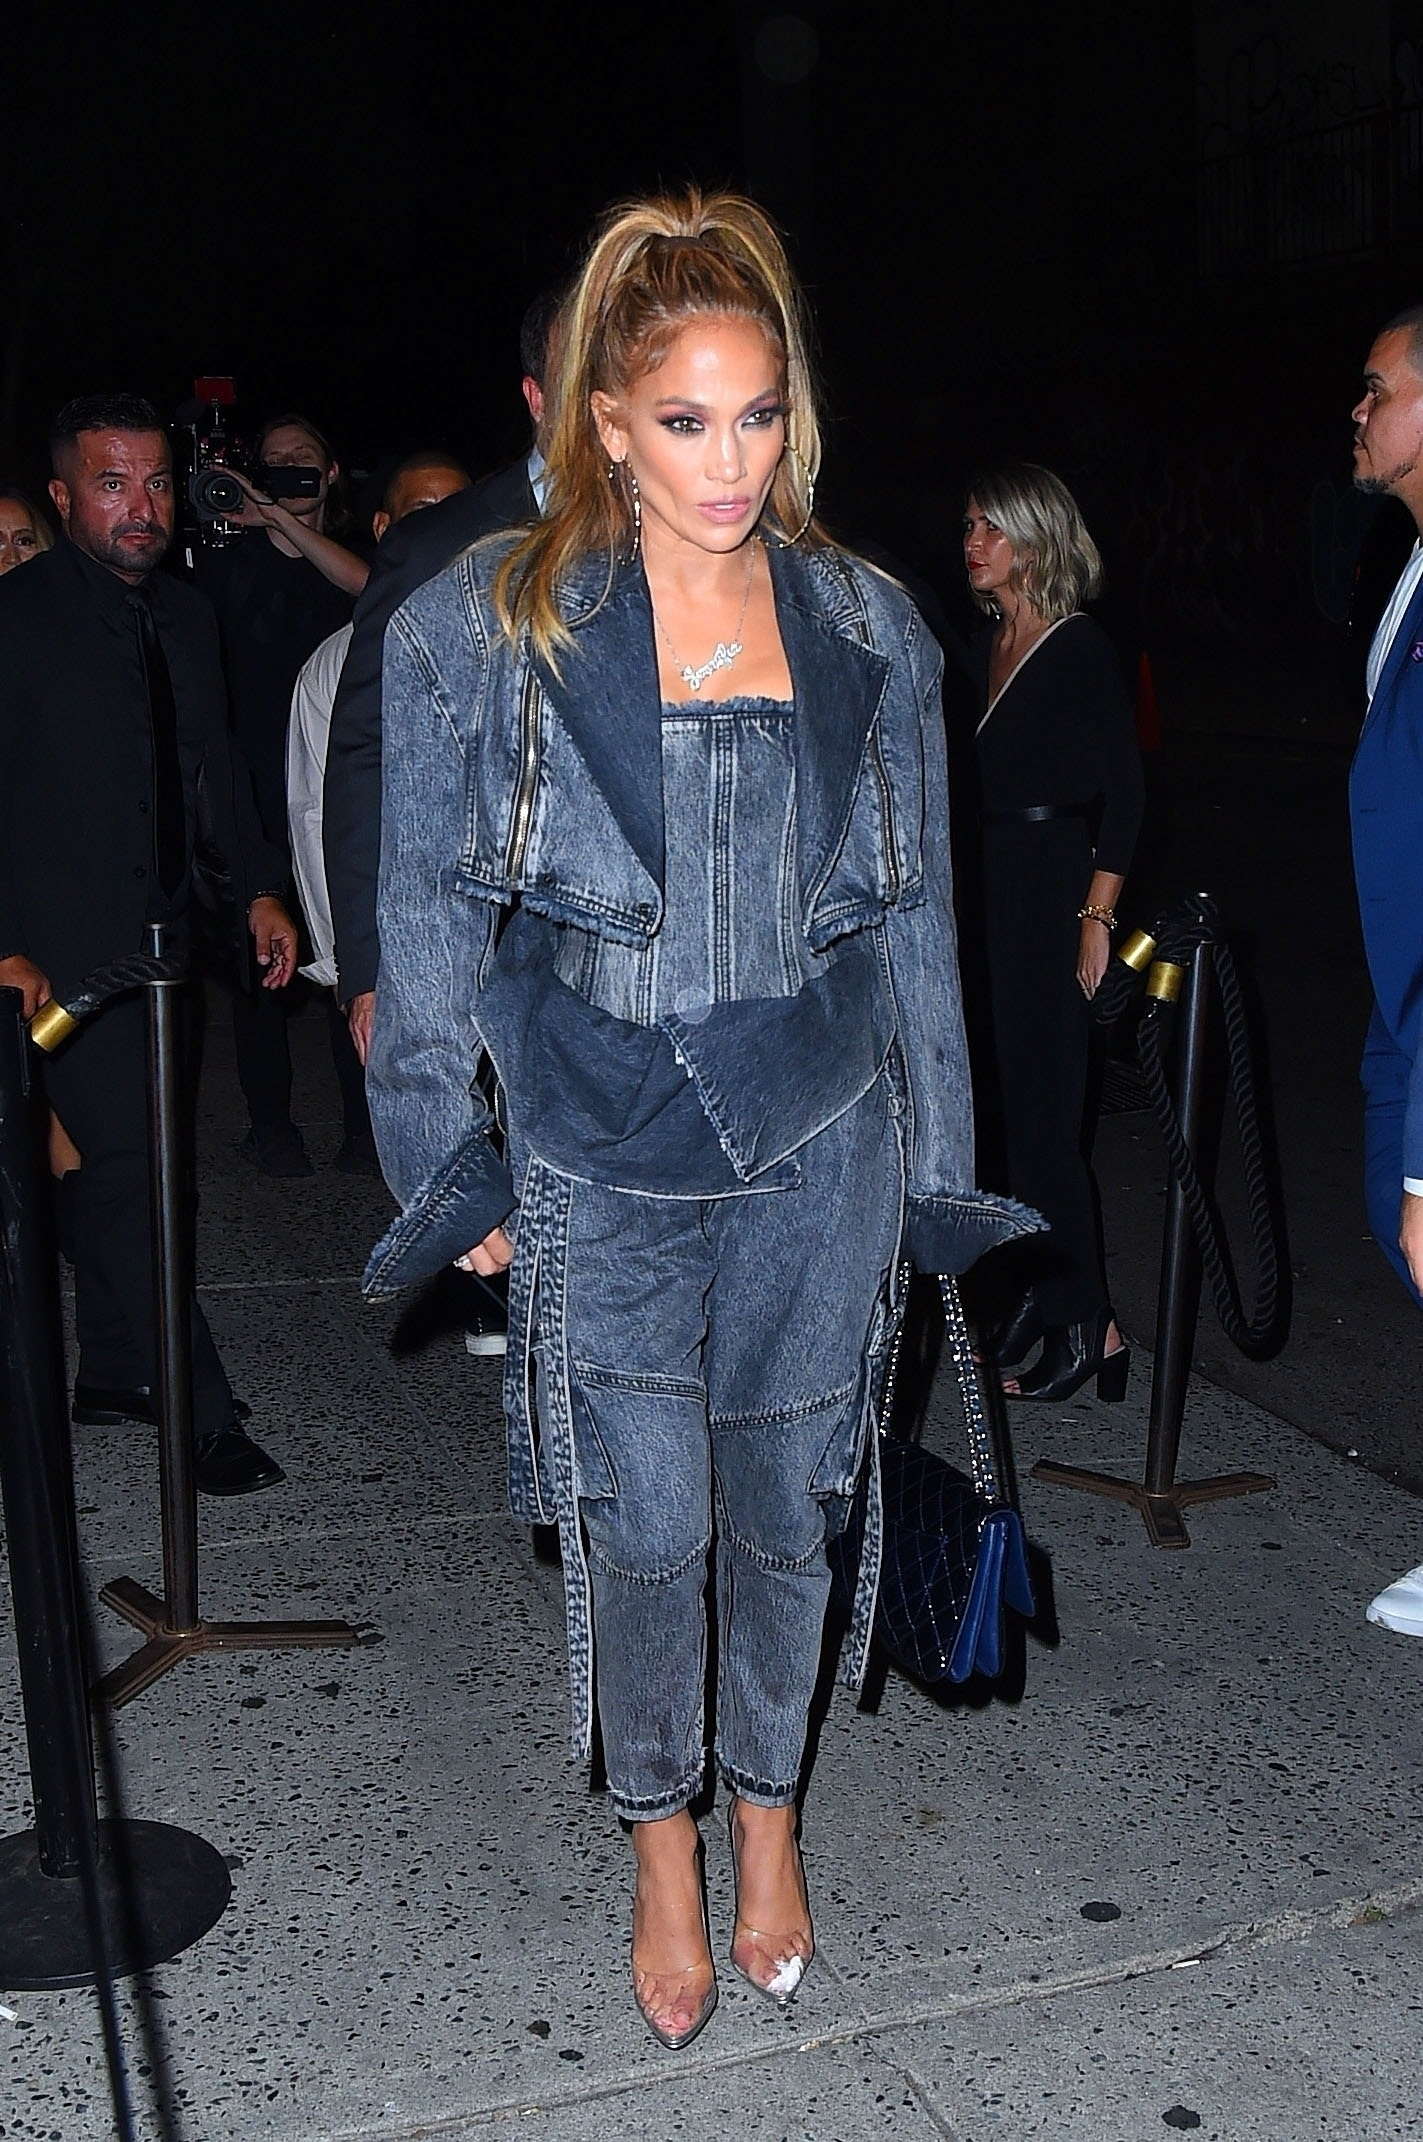 New York, NY  - Jennifer Lopez is rocking denim from head to toe as she heads to dinner with Benny Medina at the Dirty French restaurant in New York.  *UK Clients - Pictures Containing Children Please Pixelate Face Prior To Publication*, Image: 470219322, License: Rights-managed, Restrictions: , Model Release: no, Credit line: Profimedia, Backgrid USA